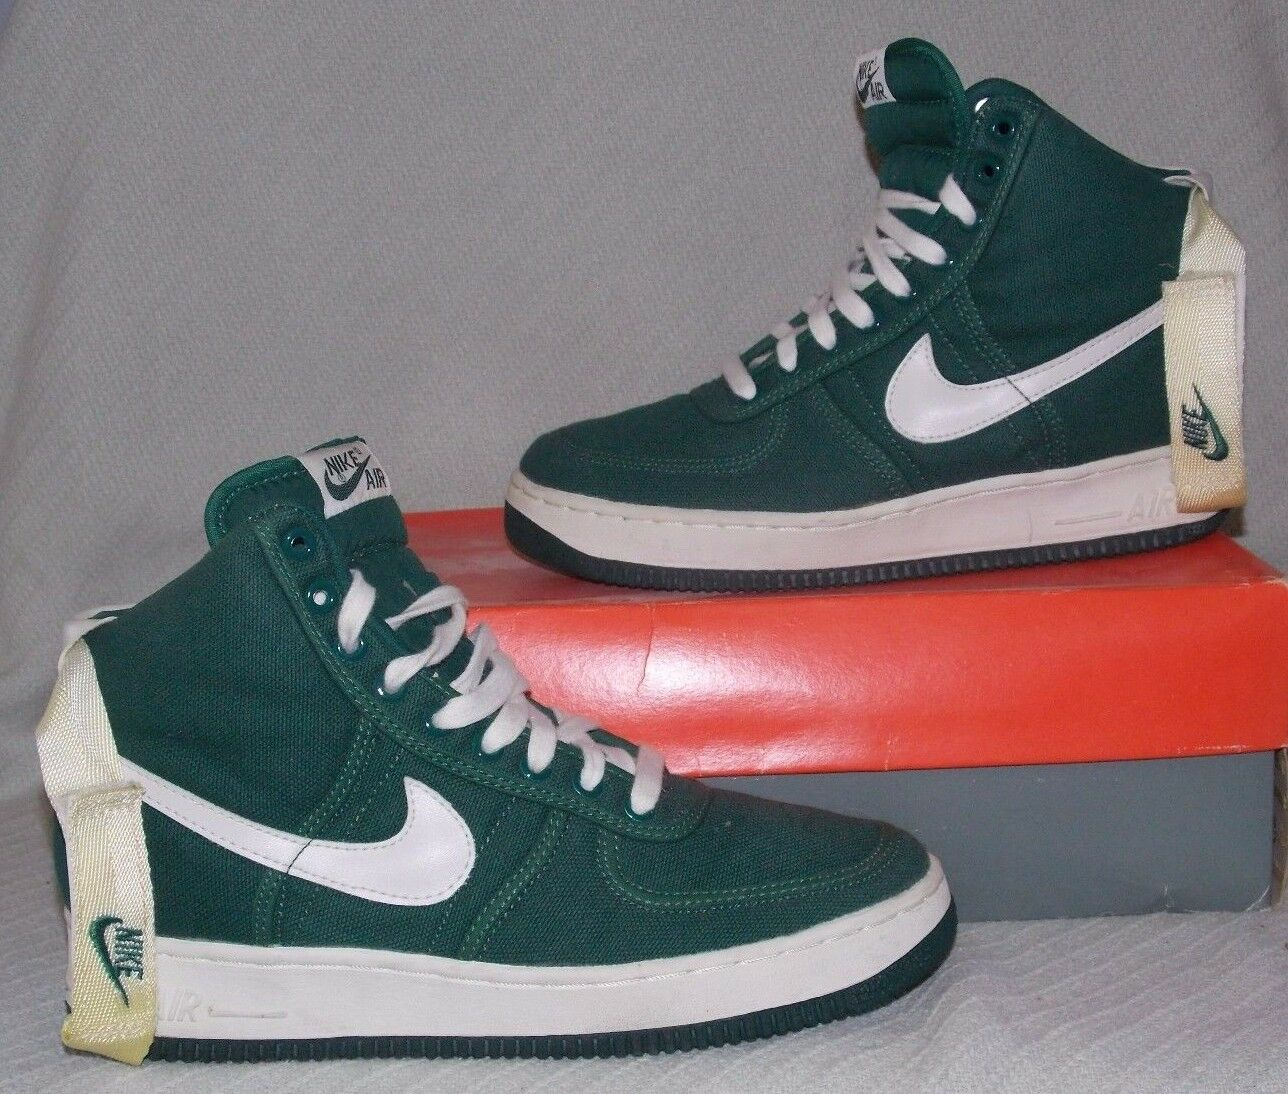 dee6459aa5 30%OFF Nike Air Force 1 High CVS SC 630098 311 Evergreen/White Athletic